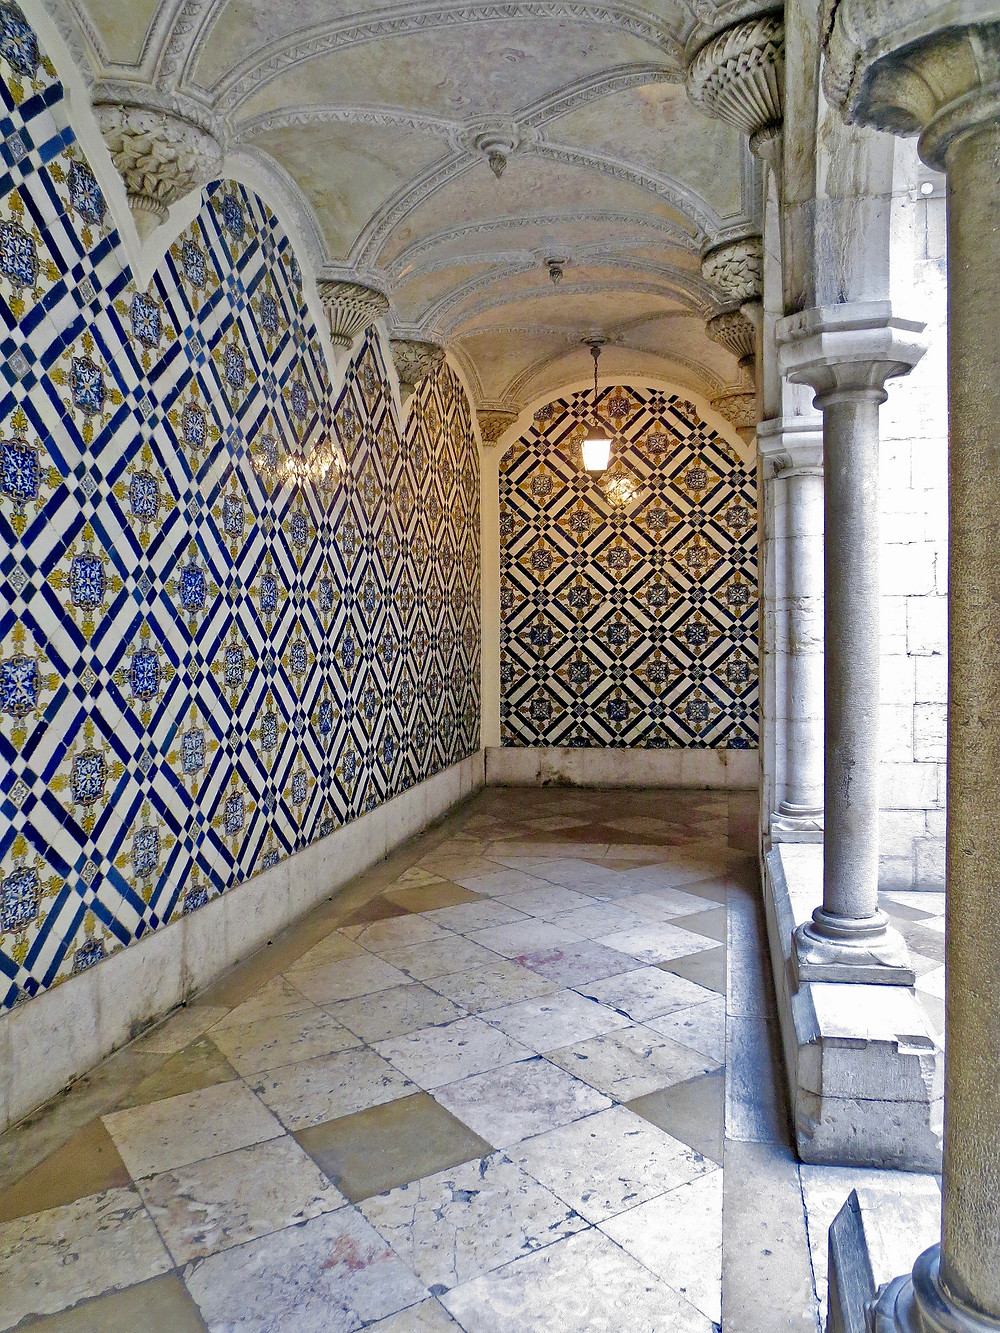 walls decorated with azulejos in the National Tile Museum